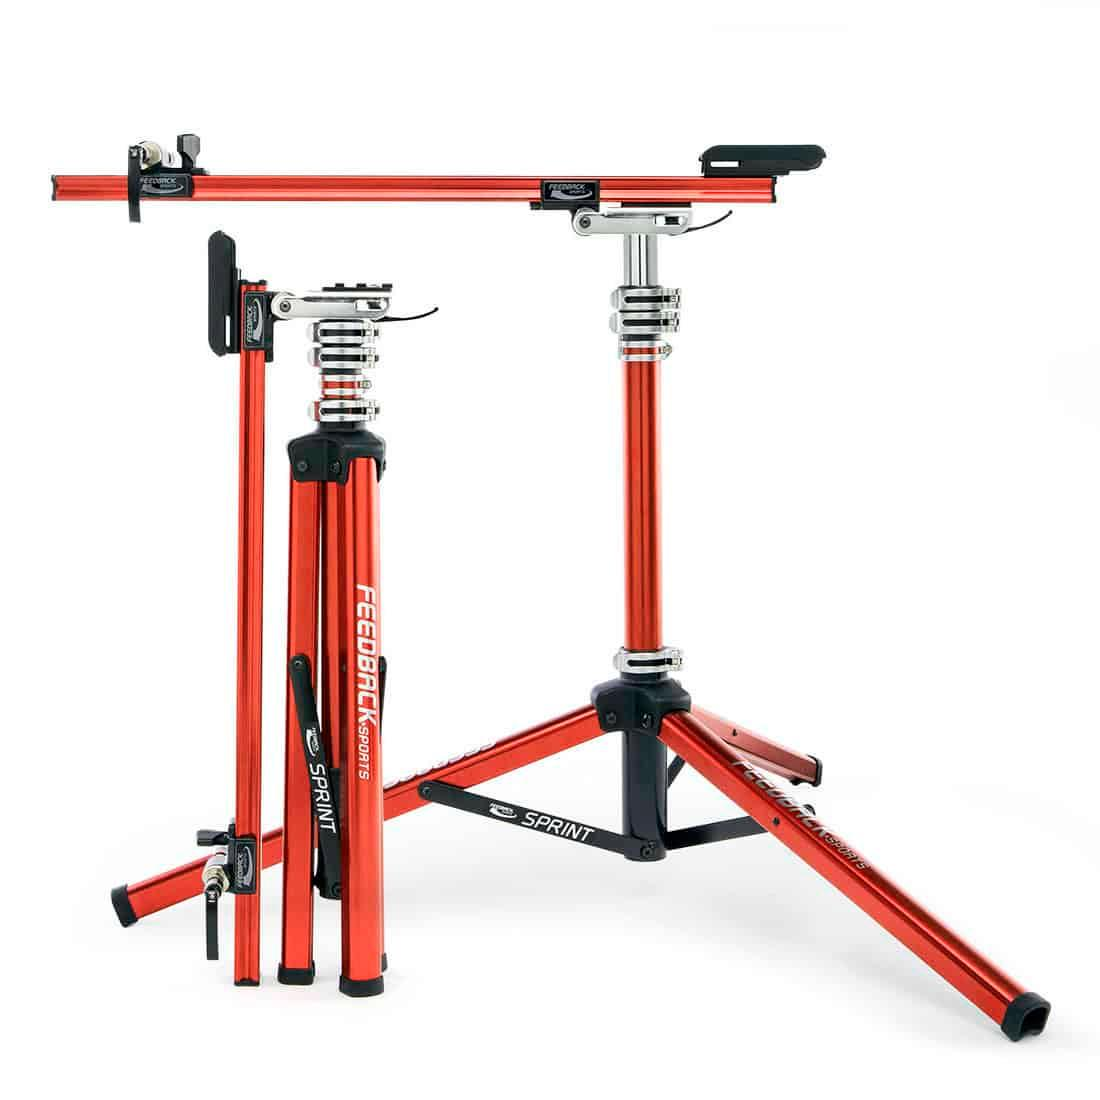 Feedback Sports Recreational Home Bike Repair Stand Outdoor Gear